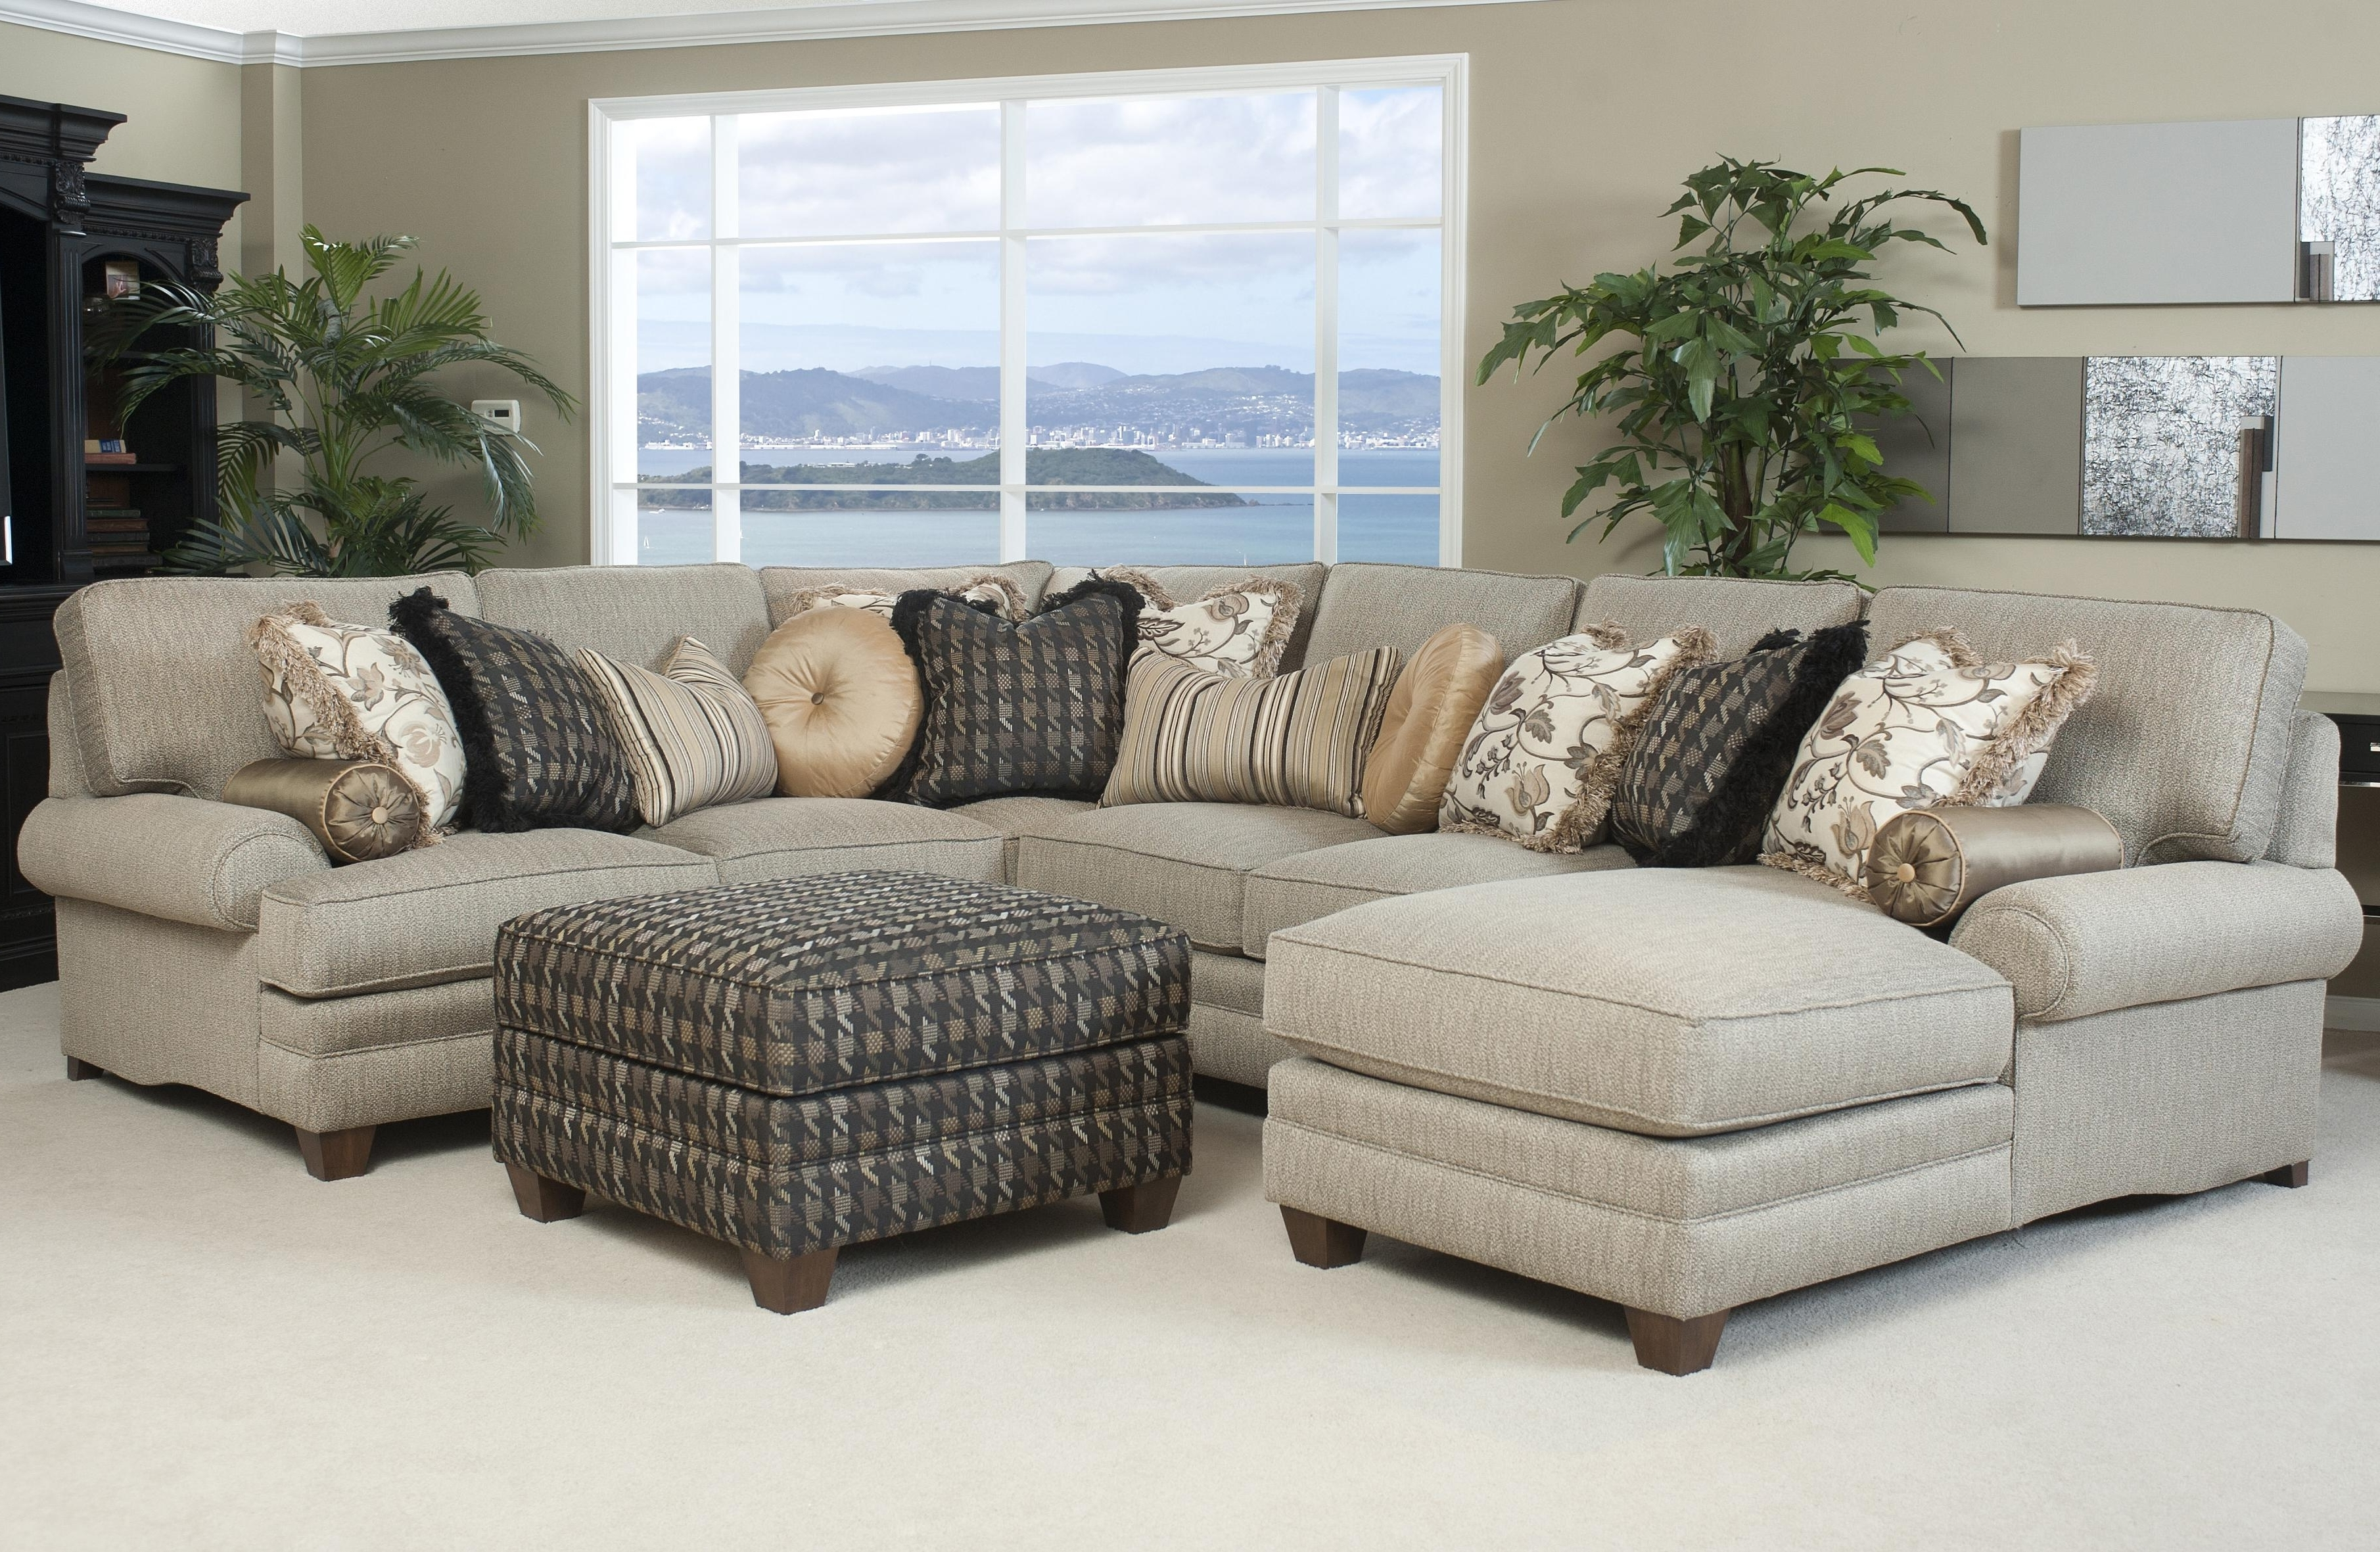 Comfy Sectional Sofas Throughout Fashionable Most Comfortable Leather Sectional Sofa • Leather Sofa (View 3 of 15)